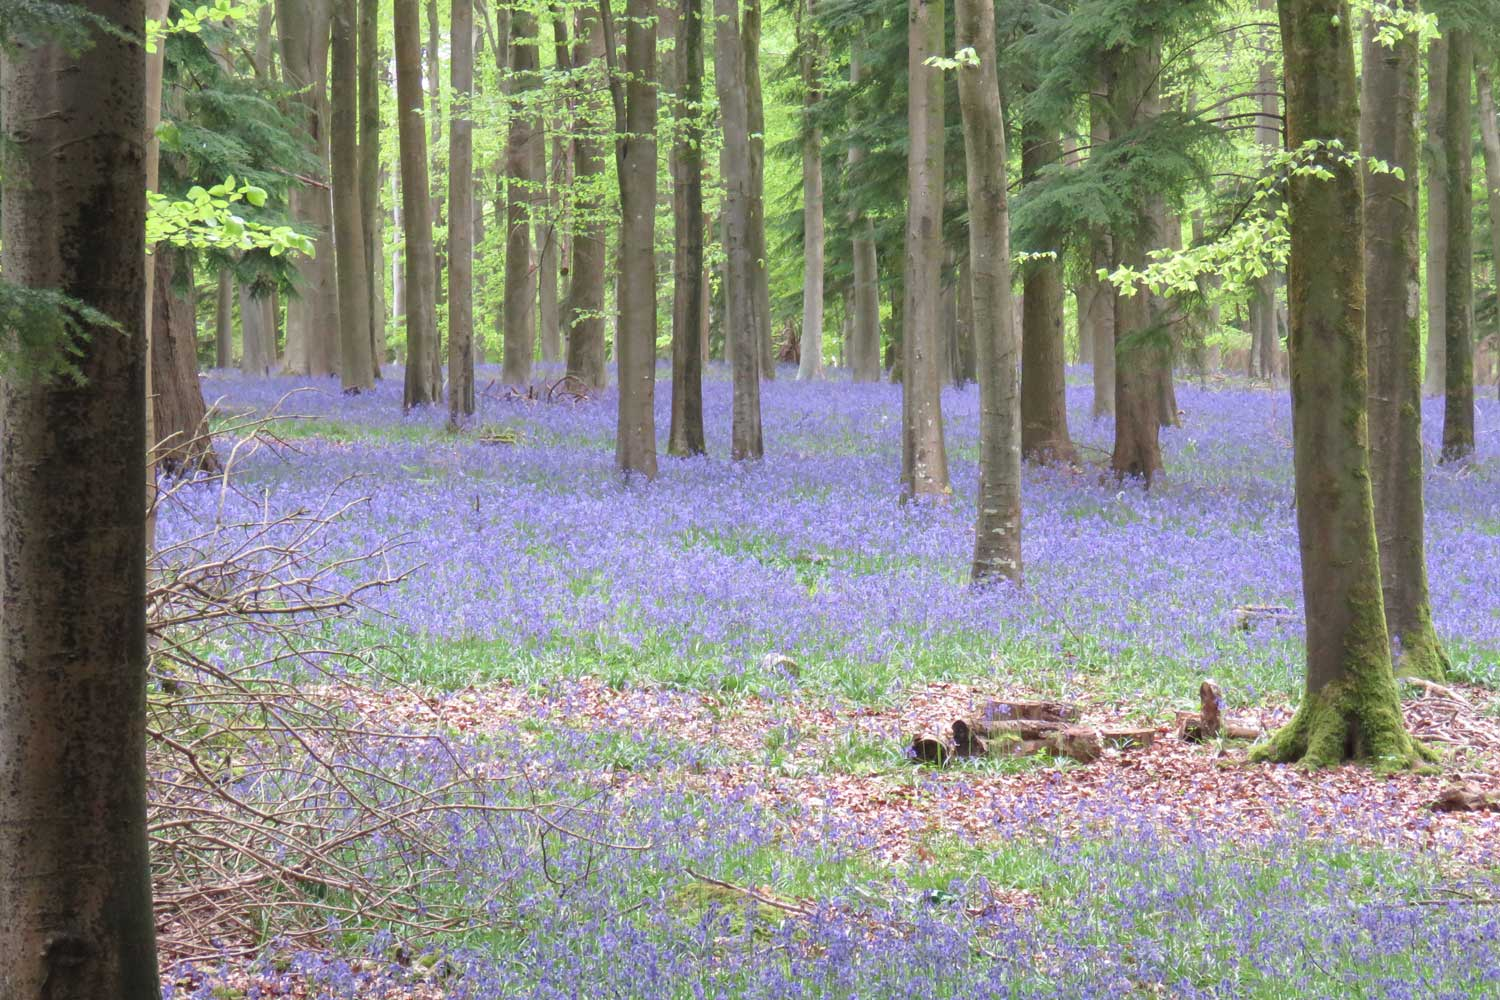 Bluebells in Woodland | Bed & Breakfast, Nether Wallop, River Test Valley, England